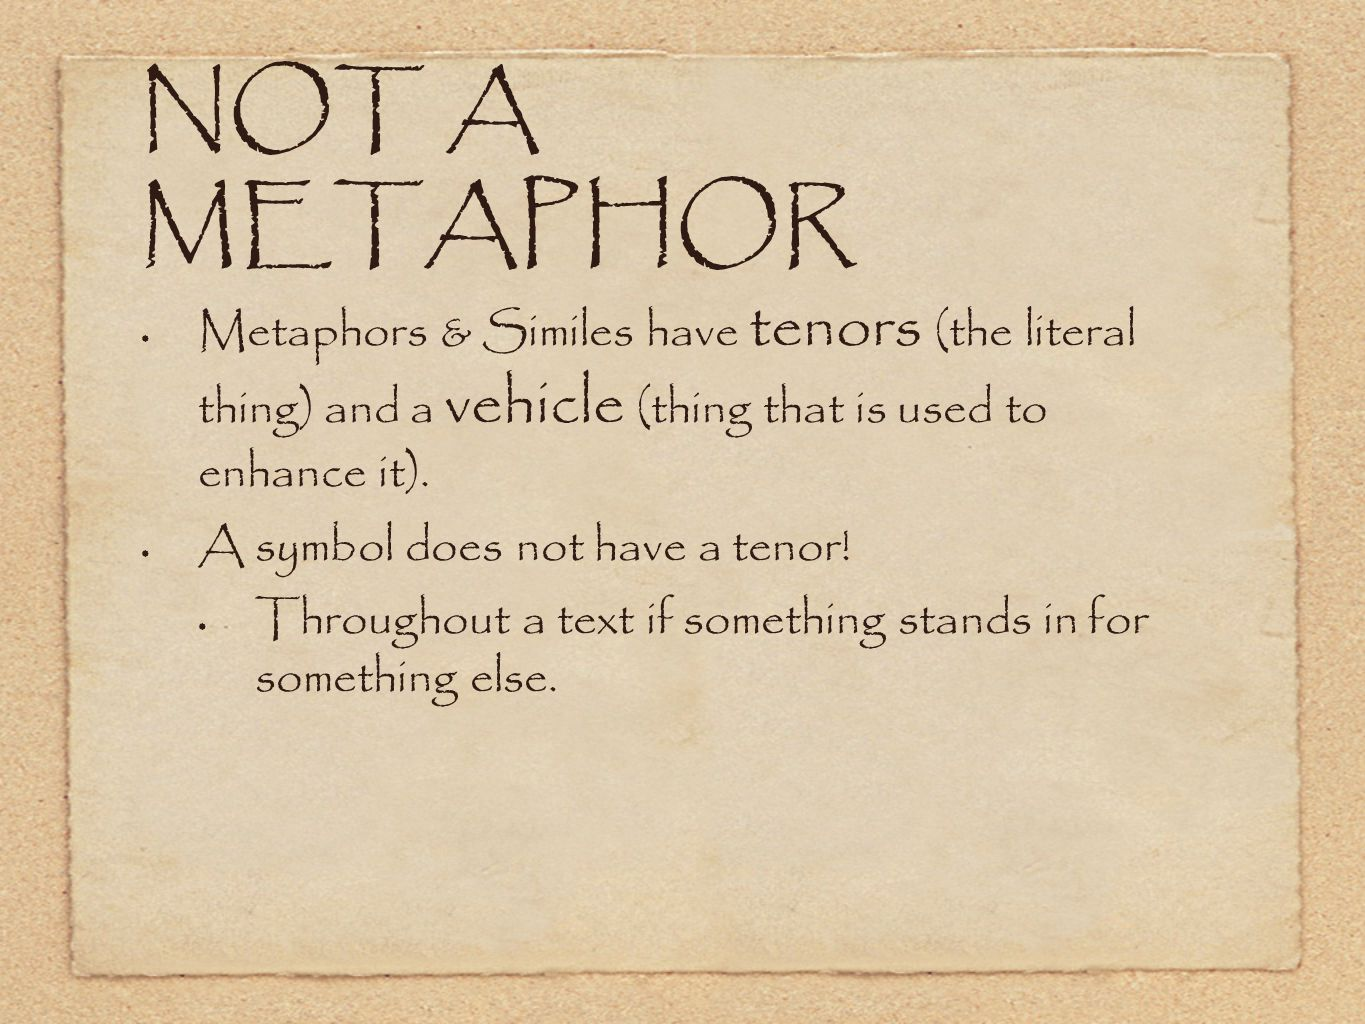 NOT A METAPHOR Metaphors & Similes have tenors (the literal thing) and a vehicle (thing that is used to enhance it).